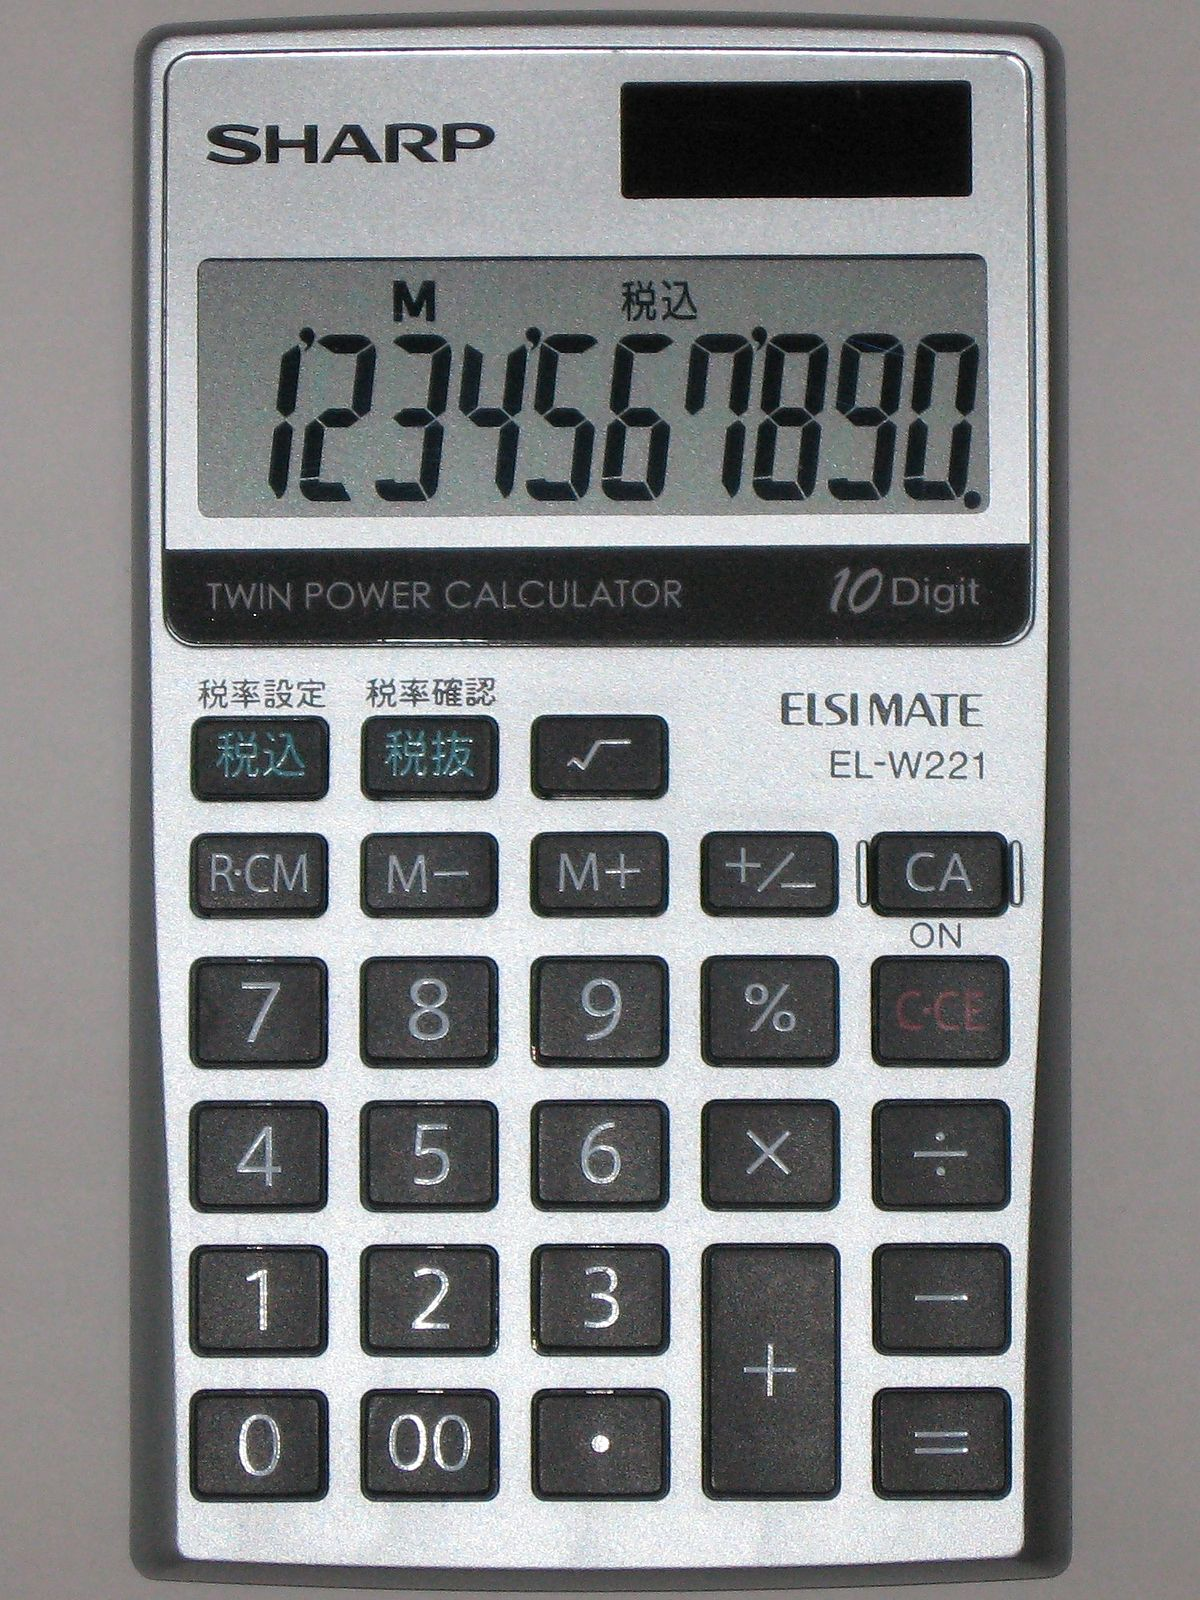 Calculator wikipedia ccuart Gallery